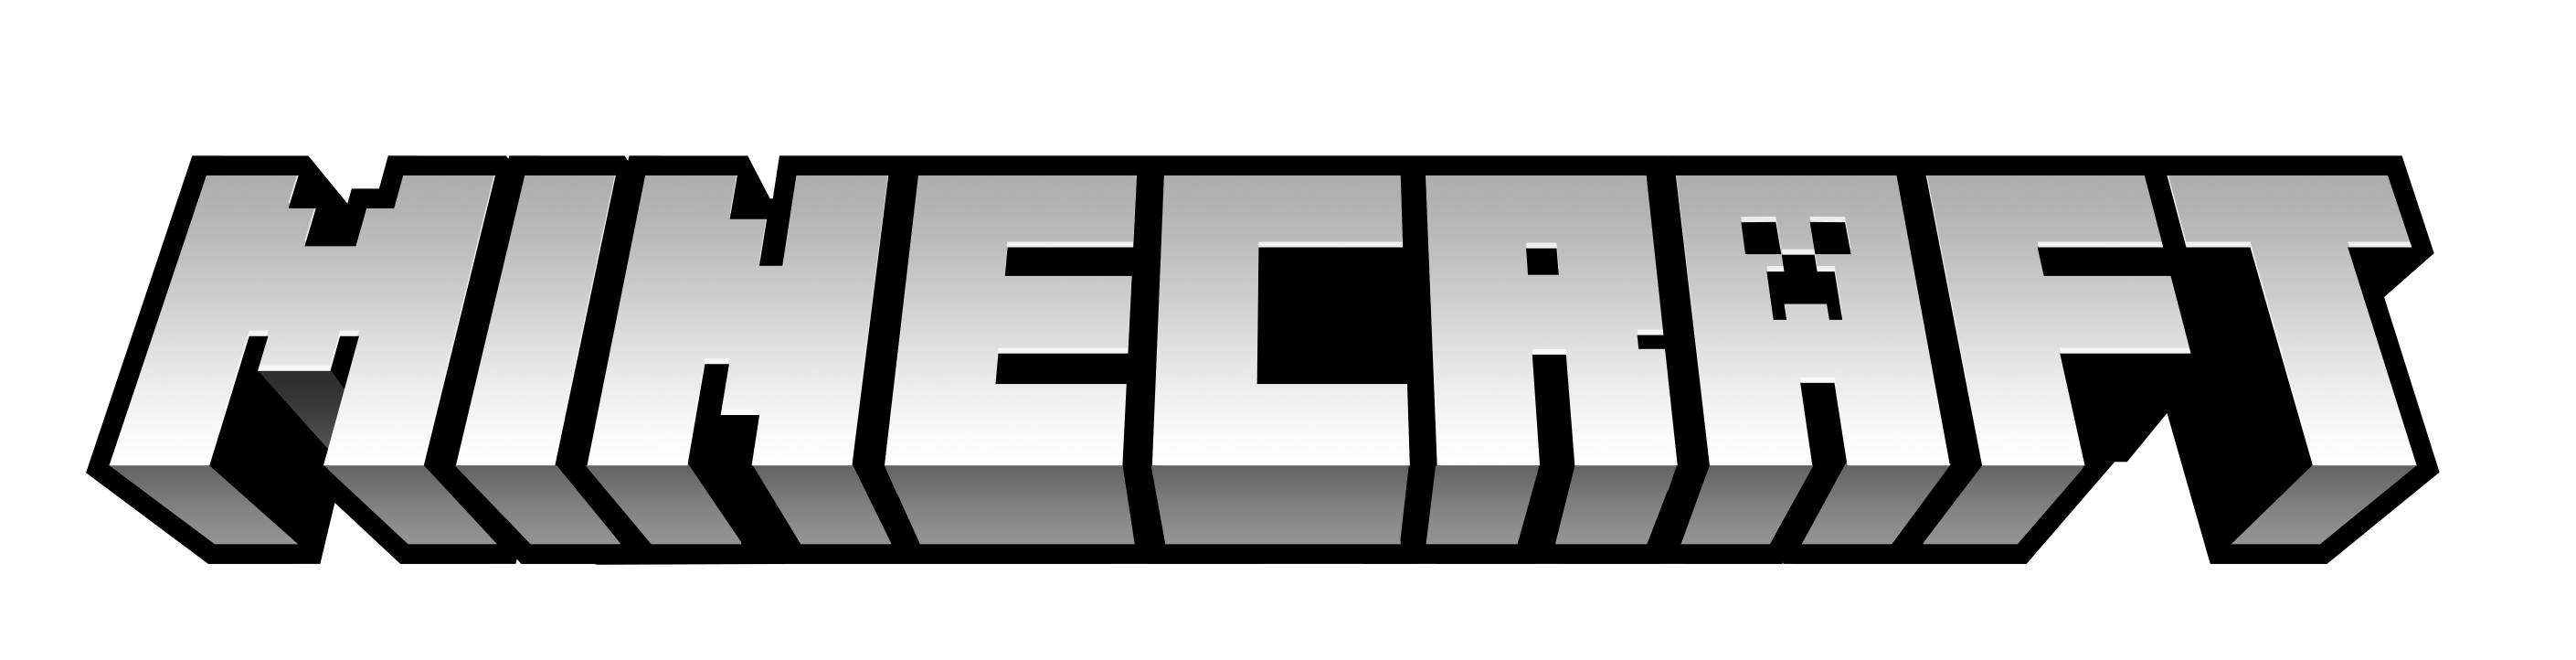 Minecraft Logo Images - Reverse Search